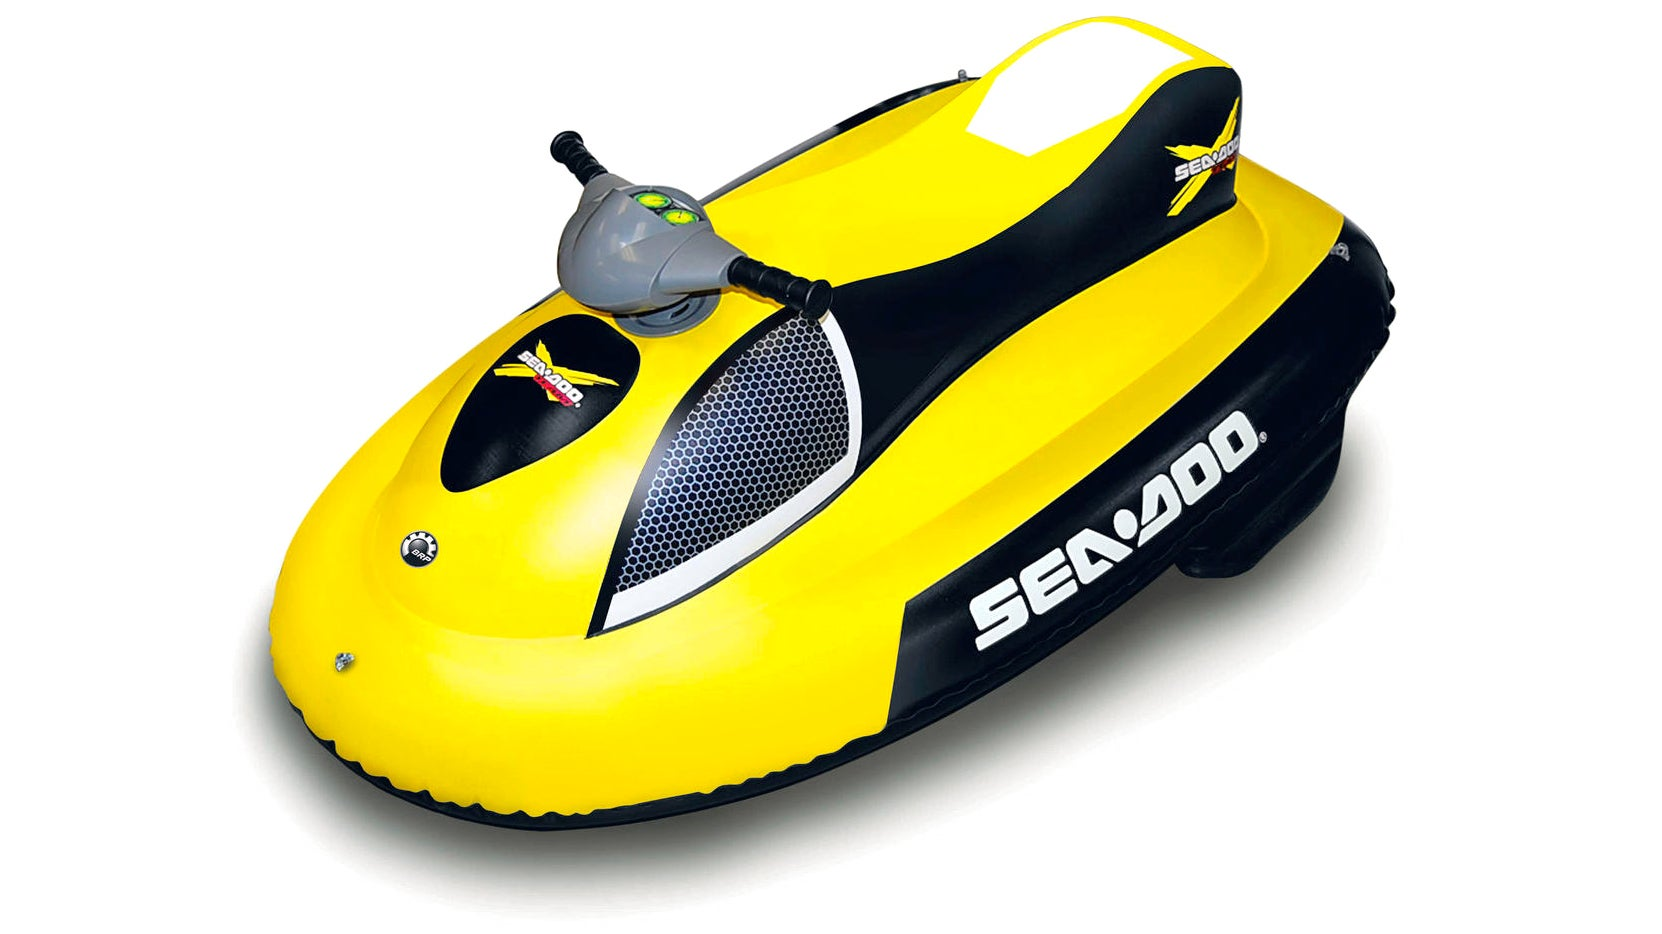 Inflatable Electric Sea-Doos Need to Exist in Adult Sizes